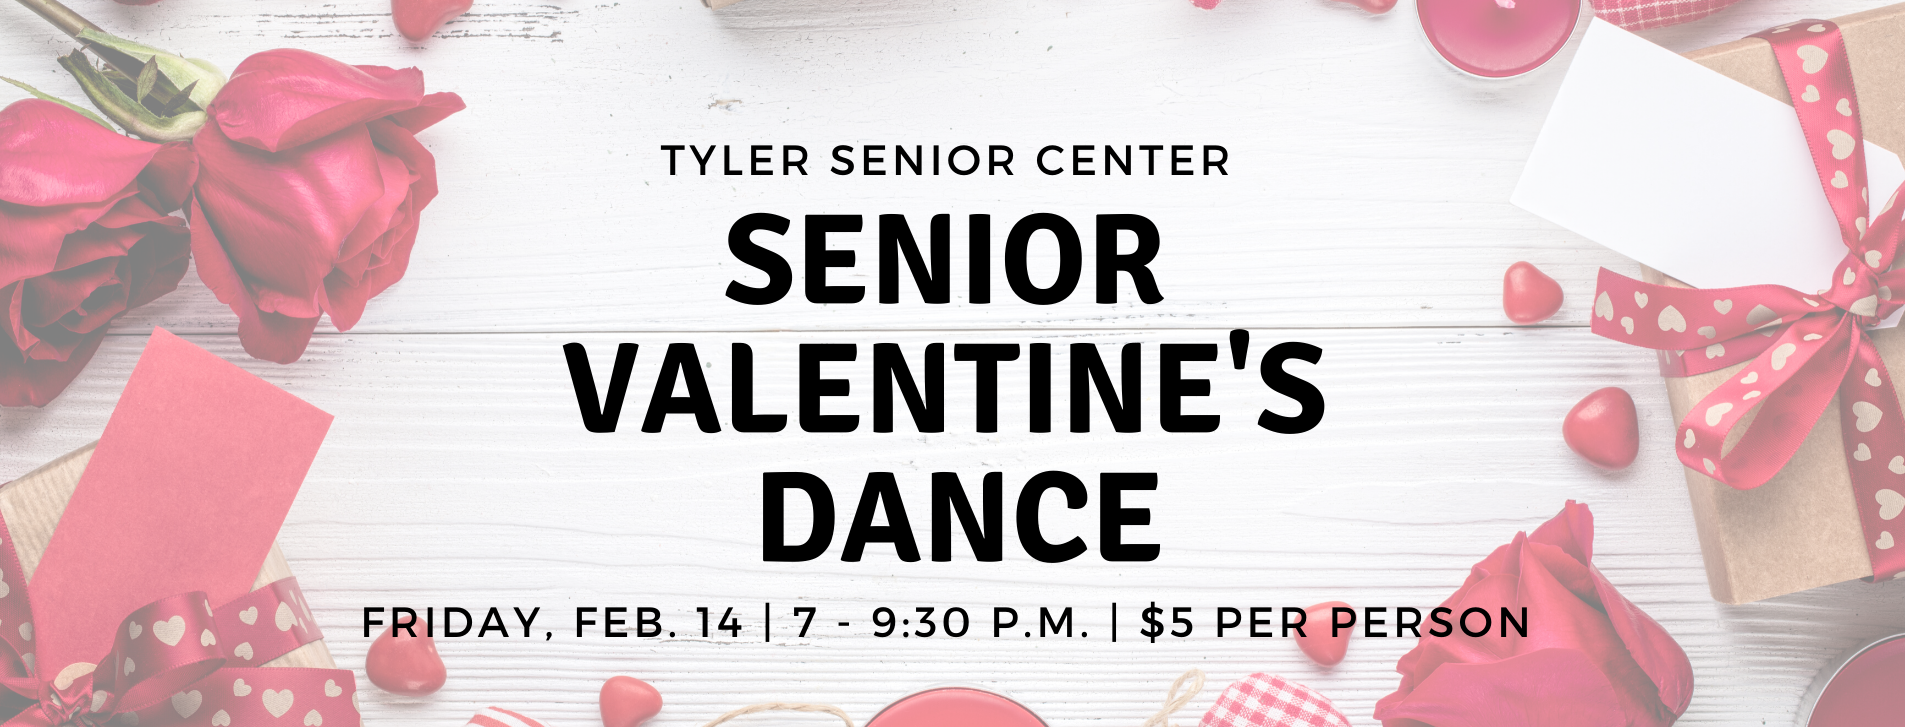 senior valentine's dance at the senior center on February 14, 2020